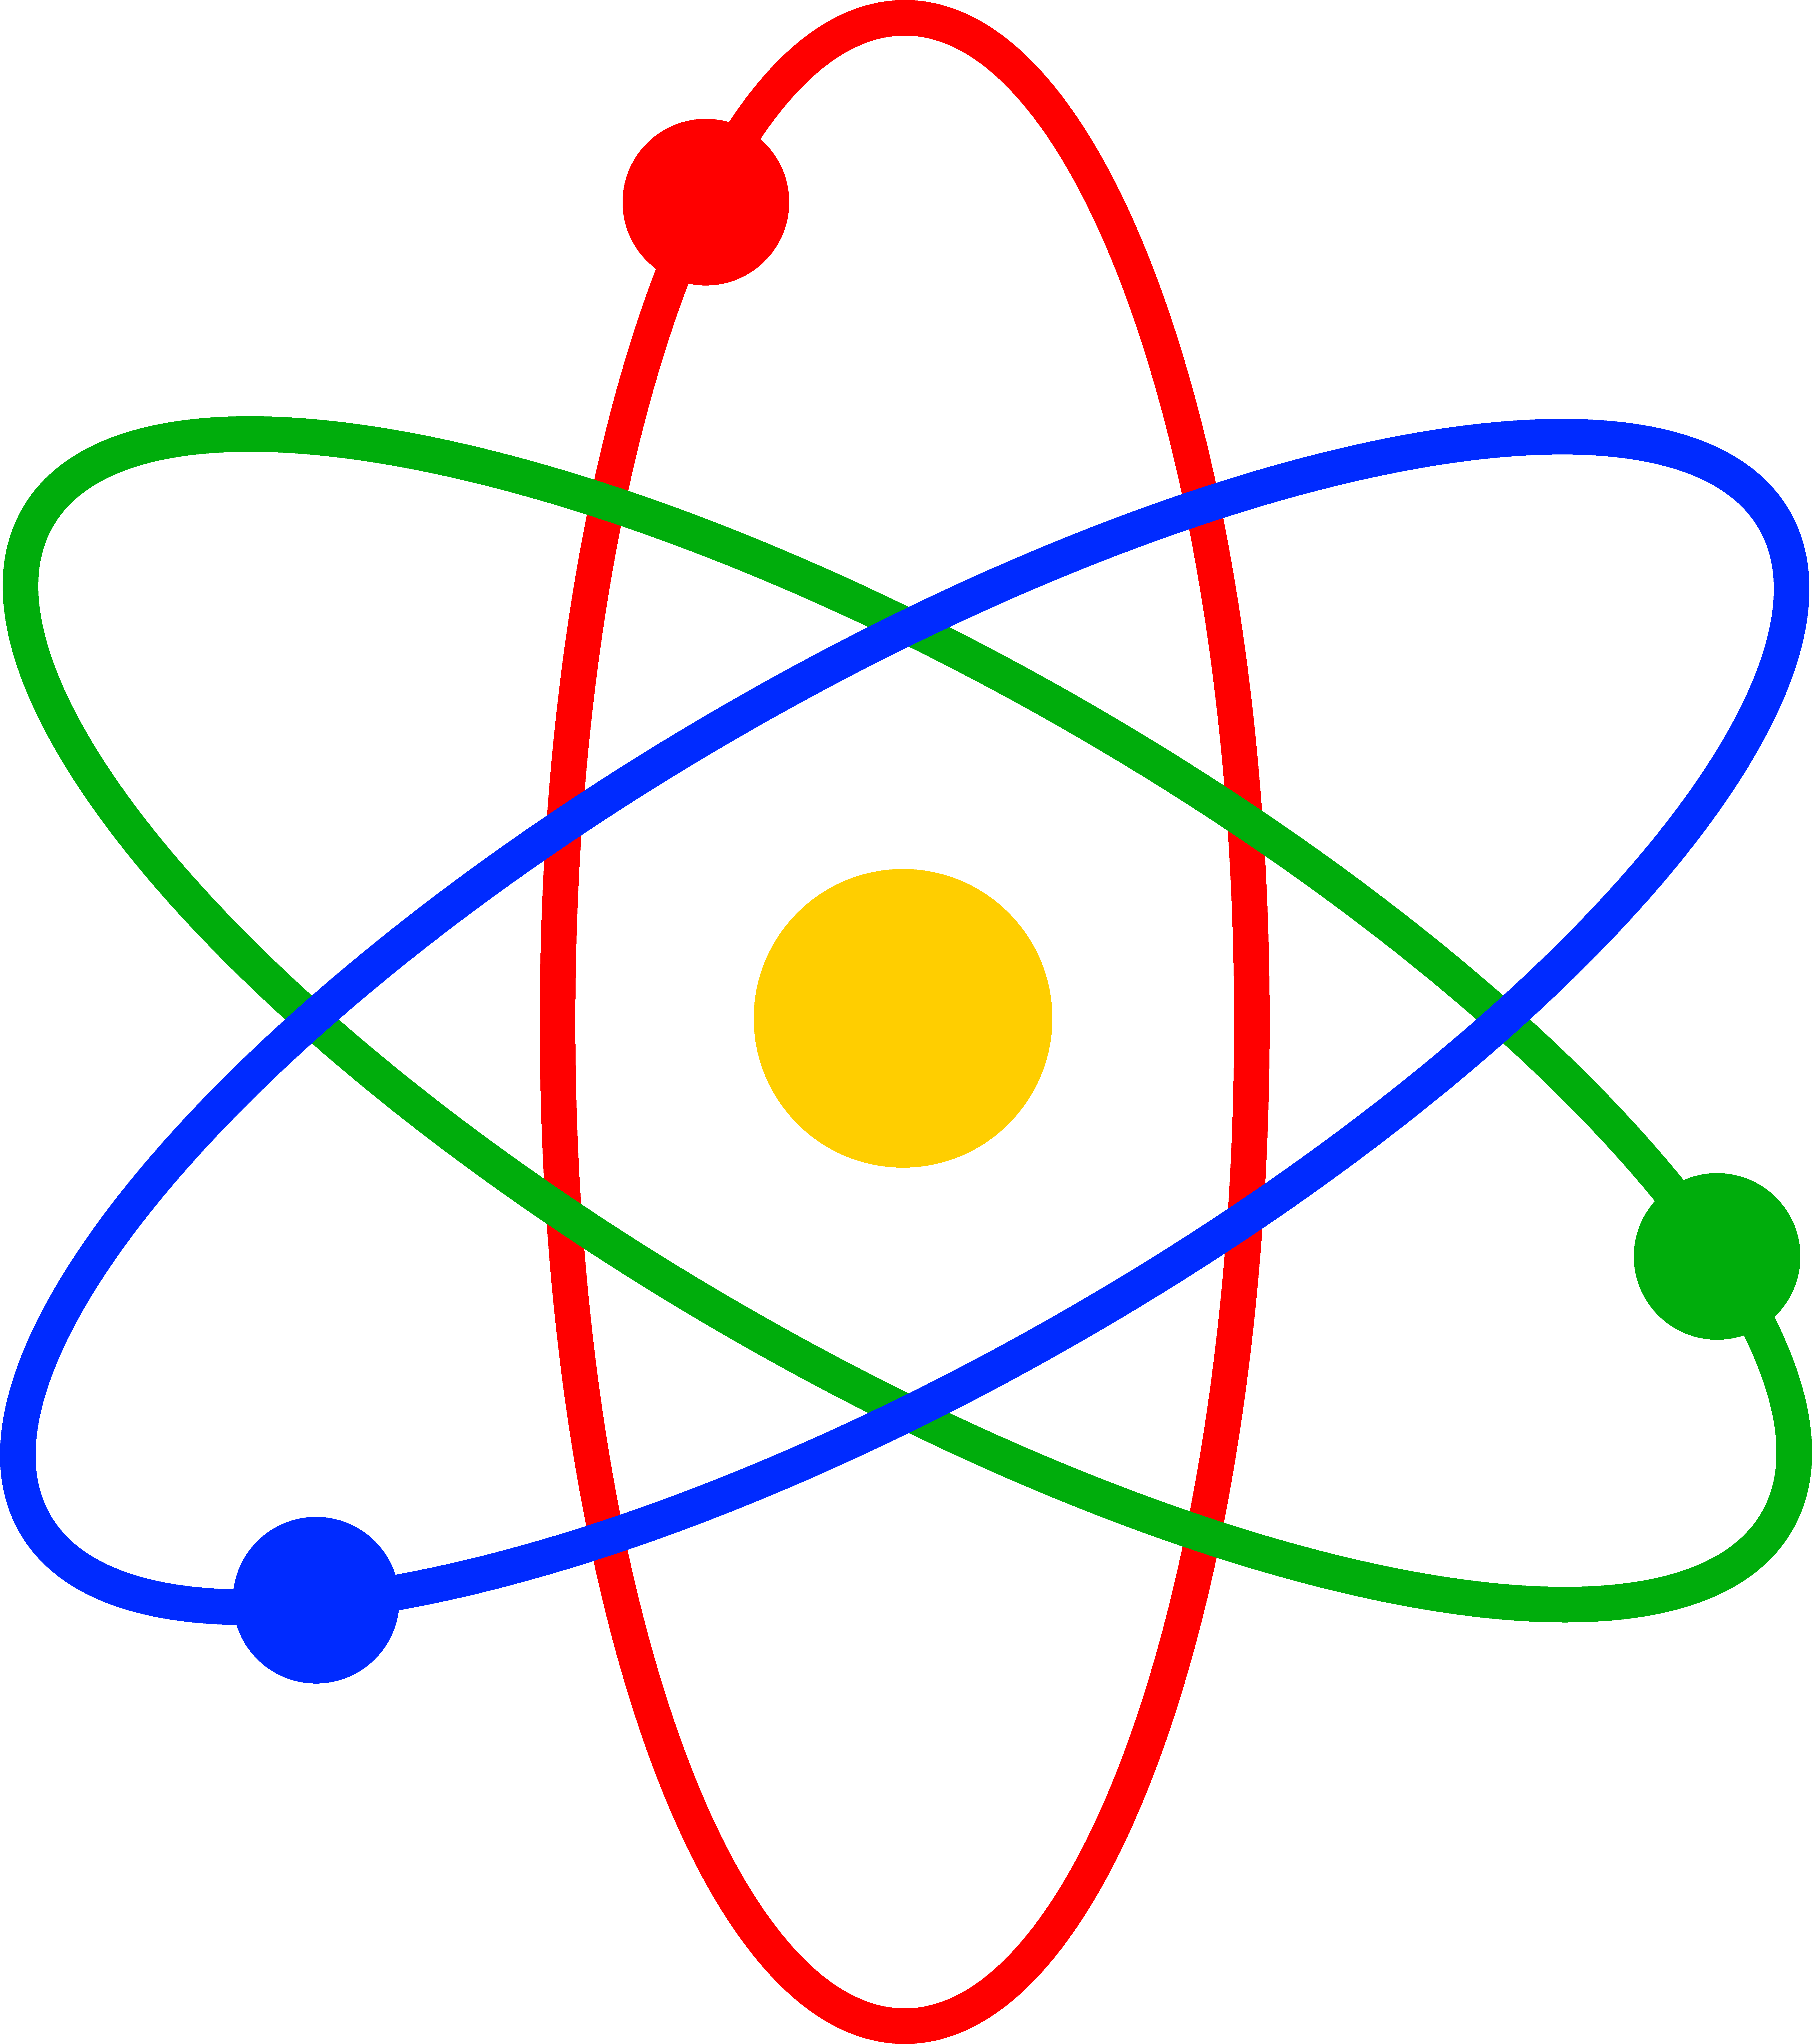 7628x8604 Colorful Atom Symbol